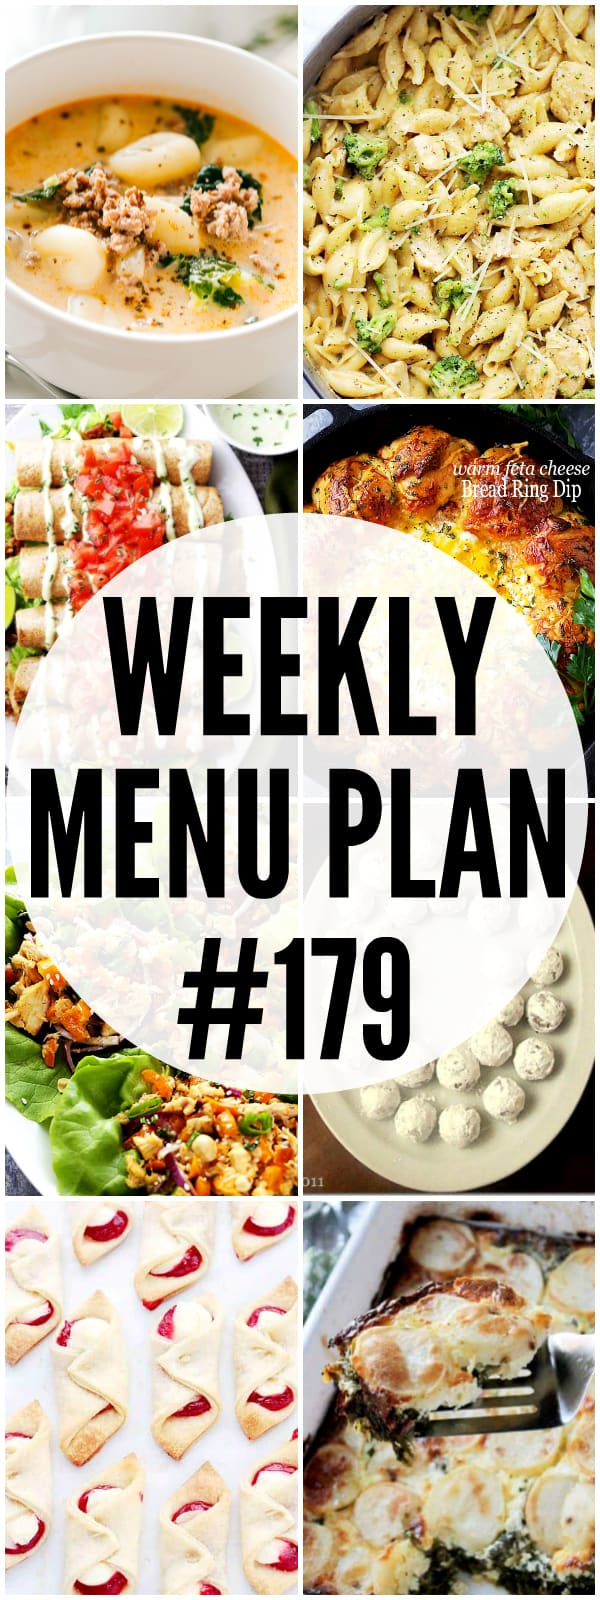 WEEKLY MENU PLAN 179